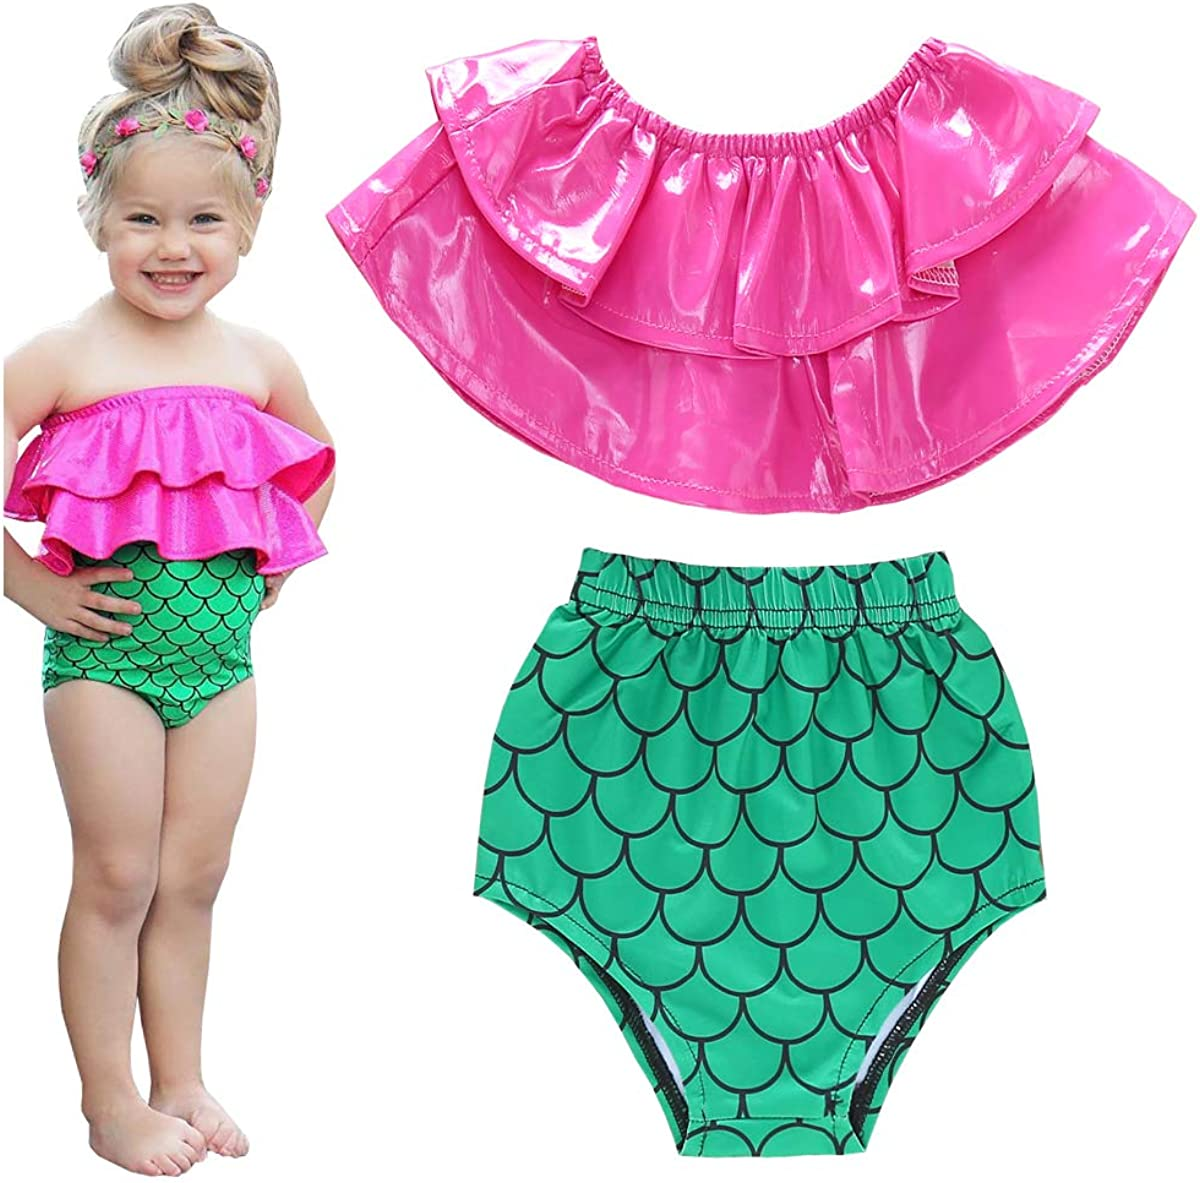 Baby Girls Mermaid Bikini Set 2 Piece Swimsuit Toddler Swimwear Strapless Ruffle Top+High Waist Underwear